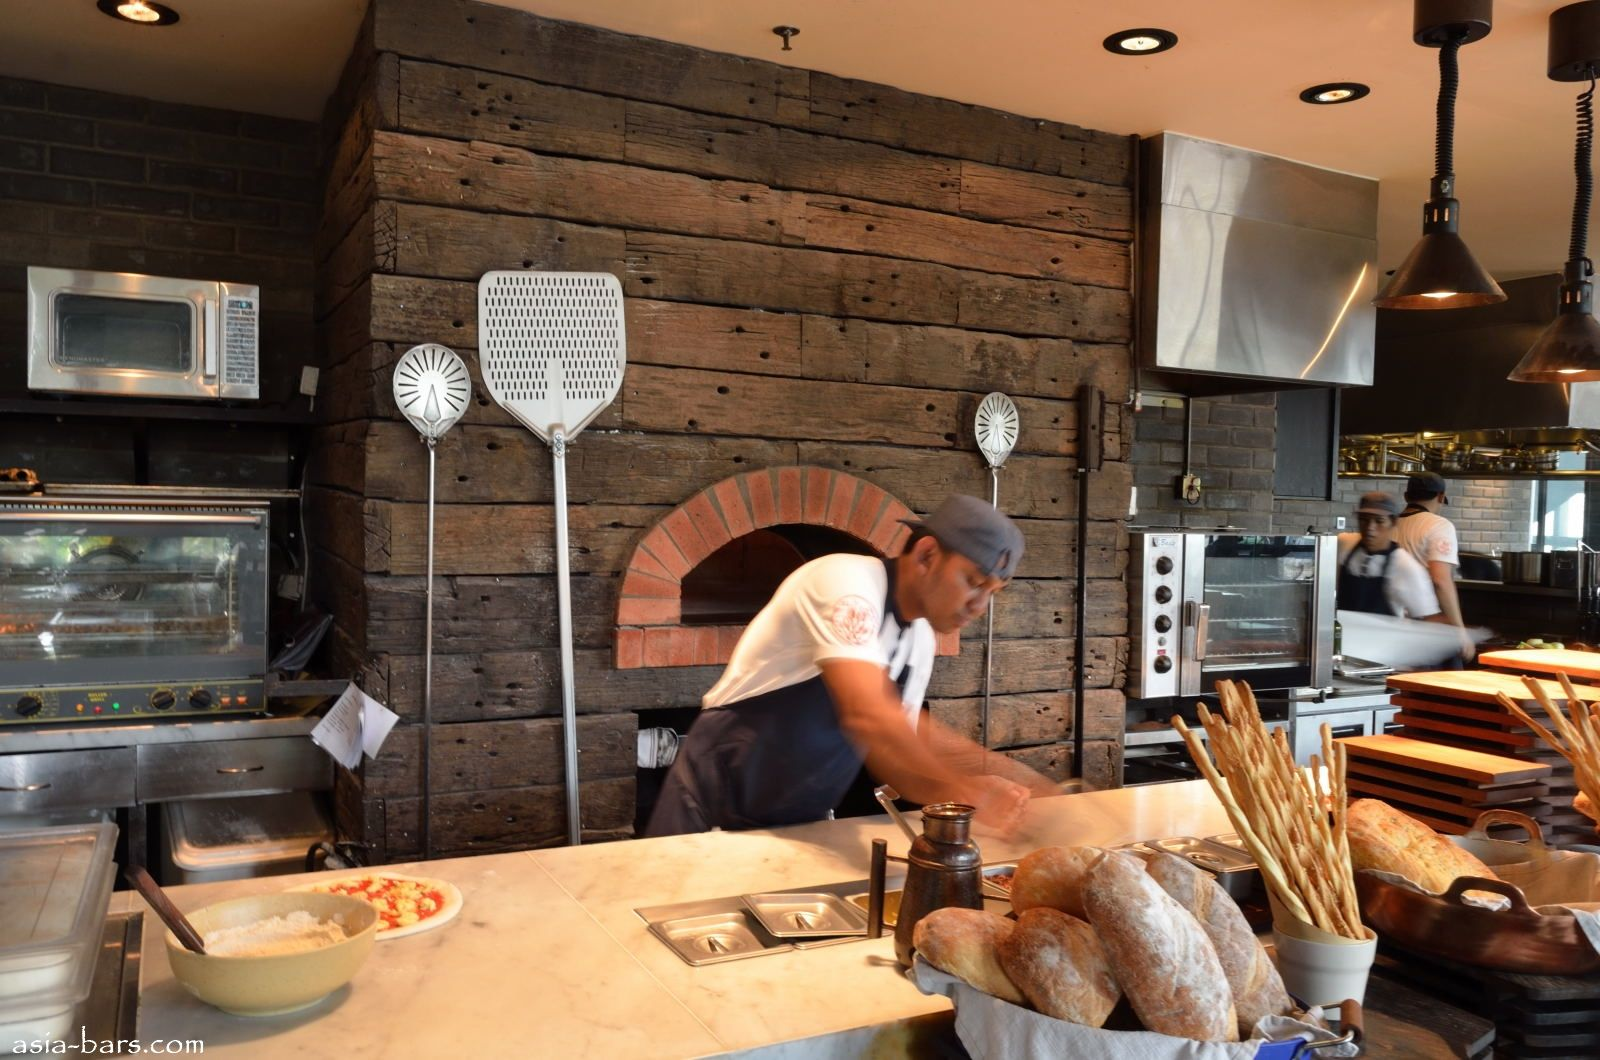 Cool pizza oven work area rtt pinterest pizzas work for Kitchen designs and more